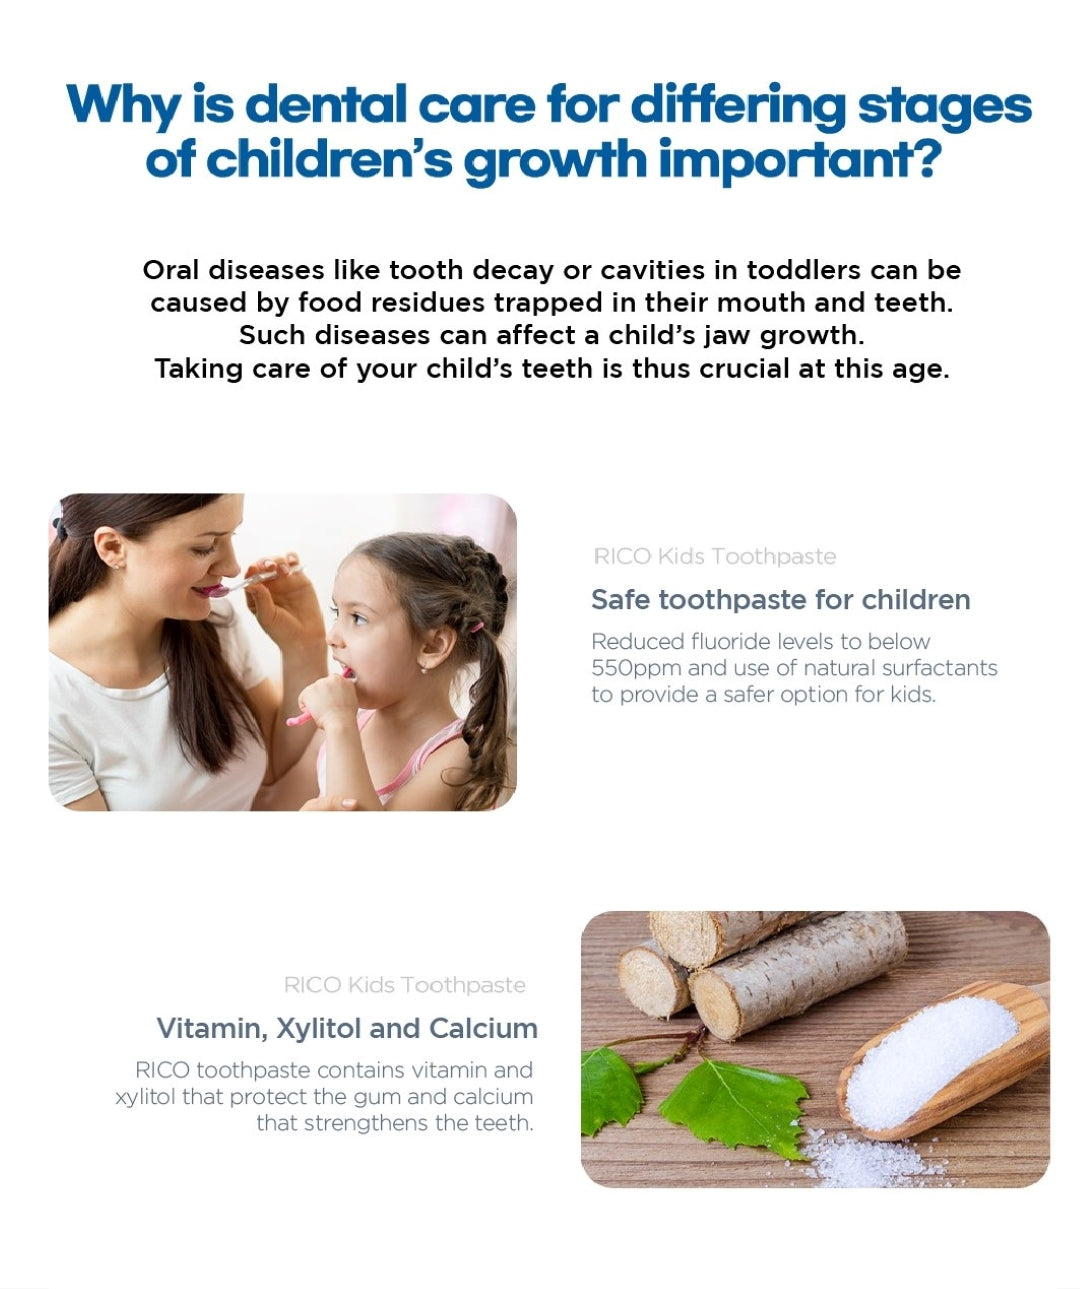 Why Dental Care for Different Stages is Important?